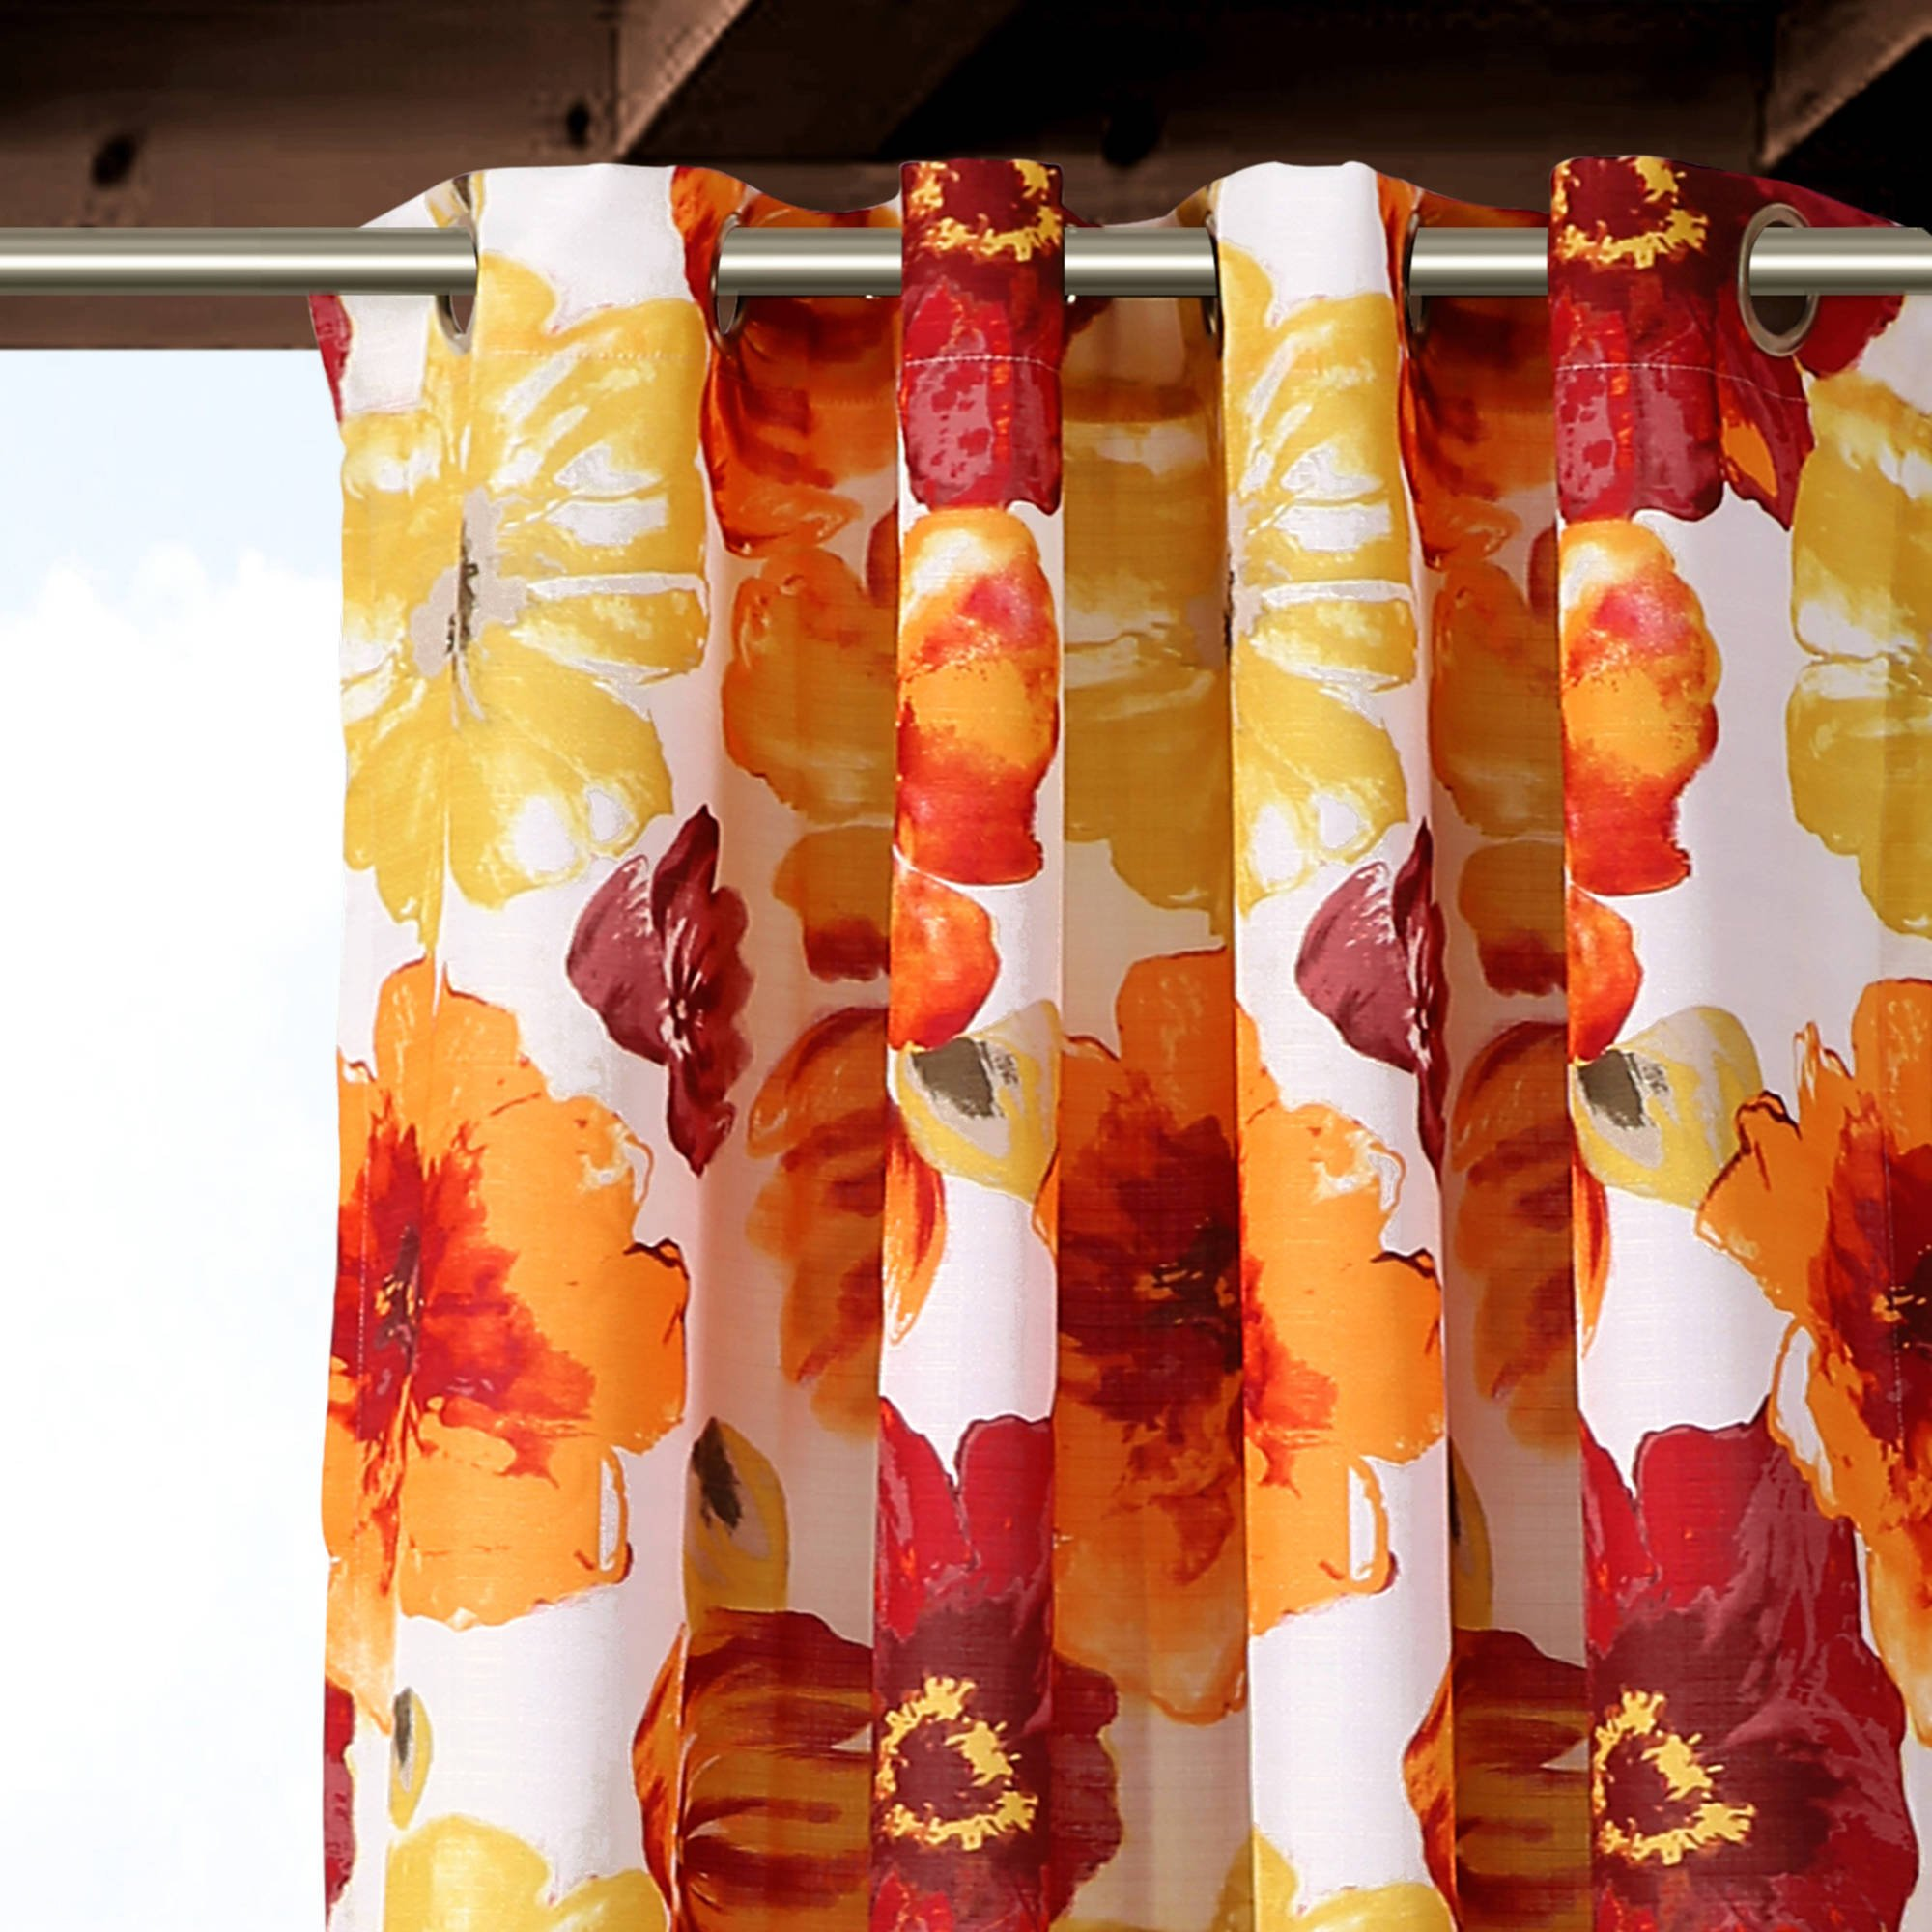 Ln 2 Piece Red Floral Gazebo Curtain Panel 84 Inch, Orange Tropical Print Outdoor Curtain Water Resistant Patio Porch, Nautical Indoor/outdoor Drapes Pergola Garden Sunroom Grommet, Polyester